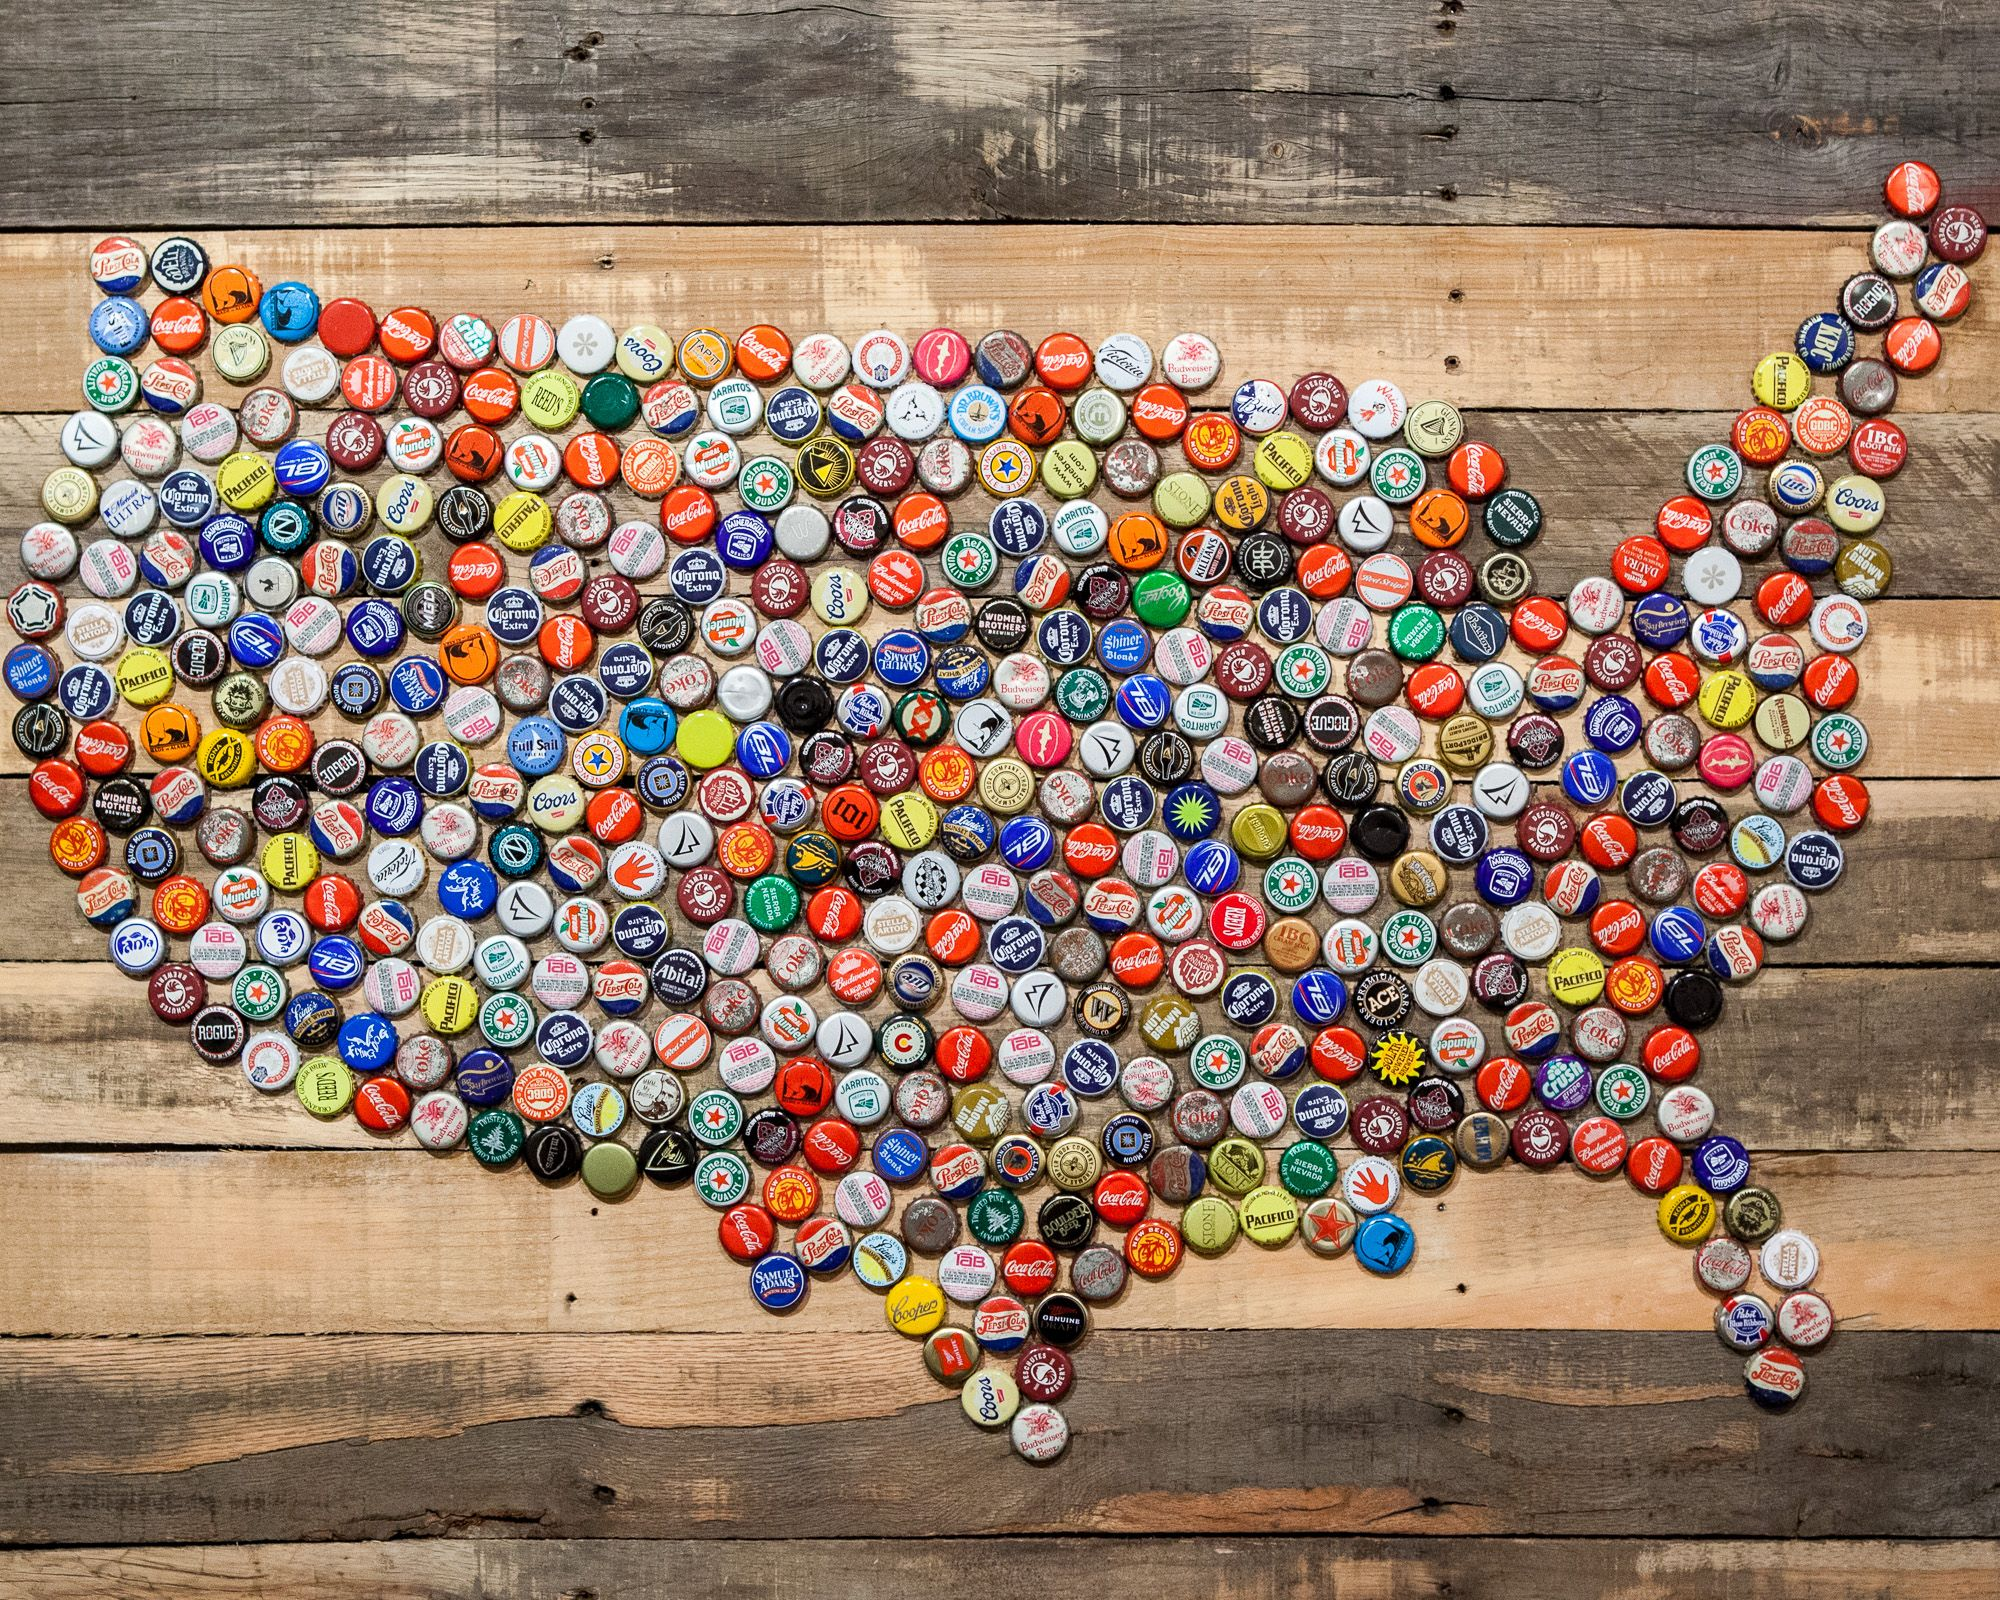 Inspiring Crafts from the Bottle Caps